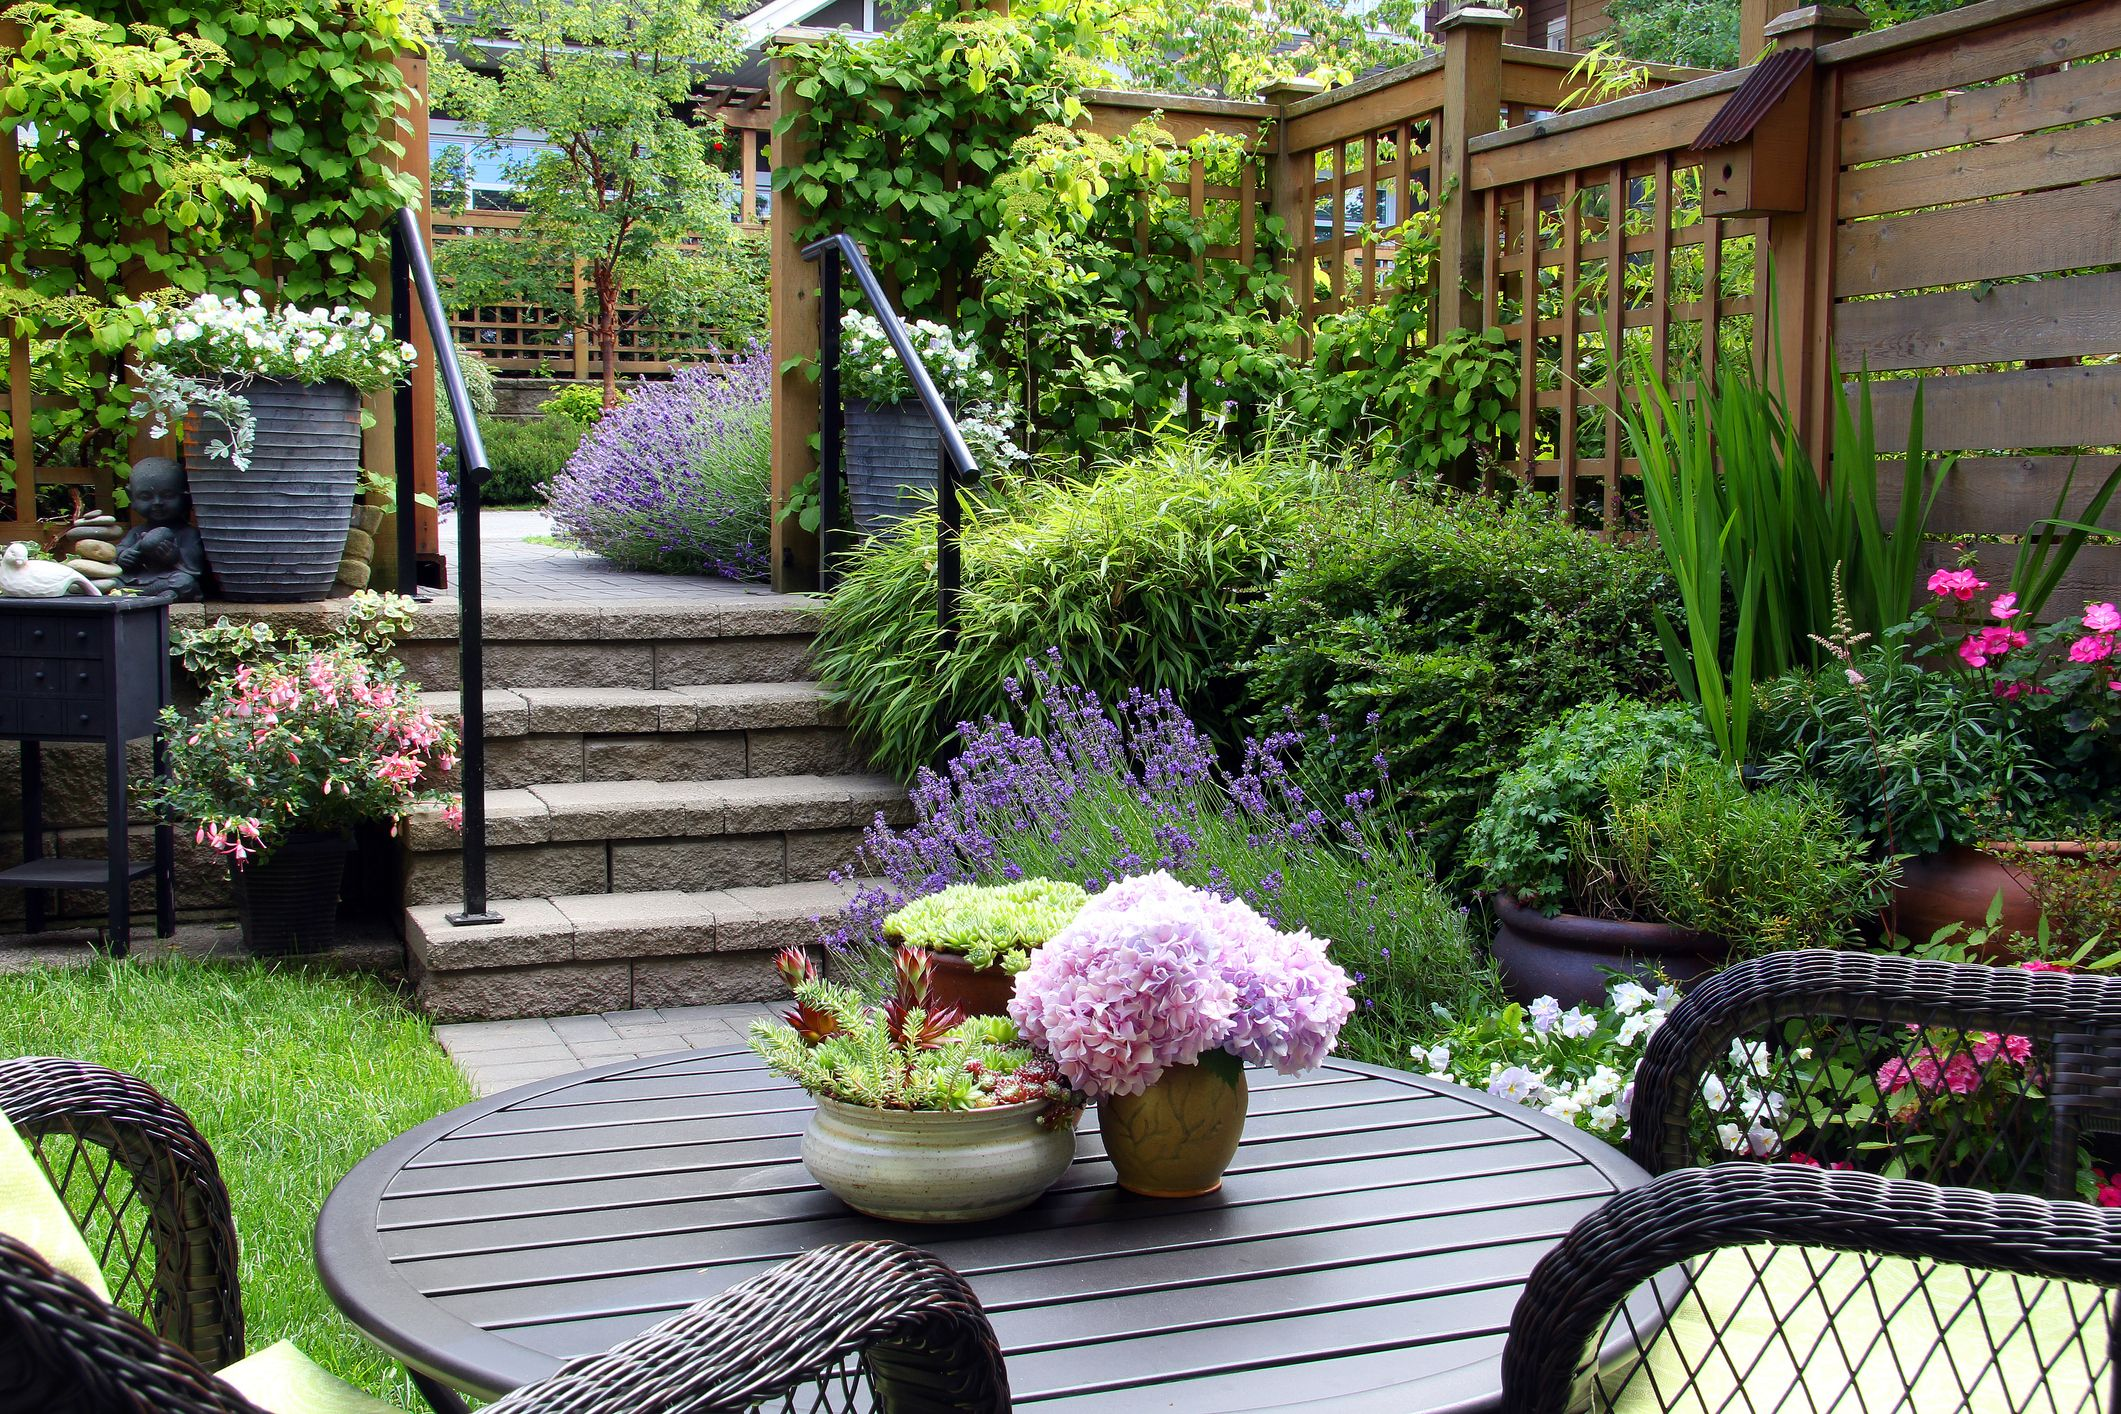 Awesome 10 Small Garden Design Ideas From Gardenersu0027 Worldu0027s Joe Swift